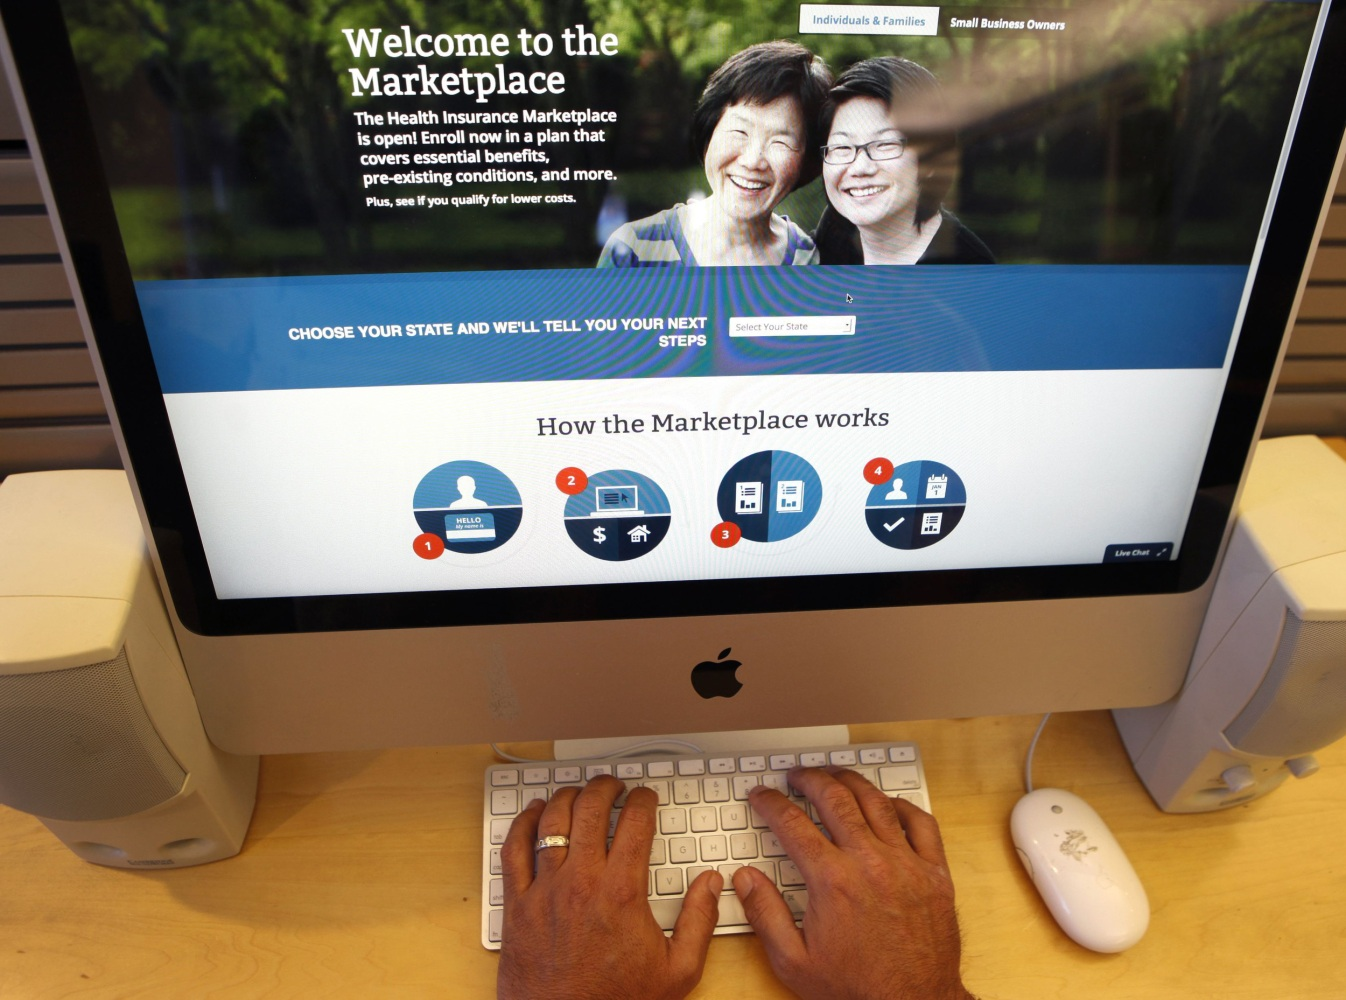 Obamacare sign-ups for 2017 projected at 13.8 million